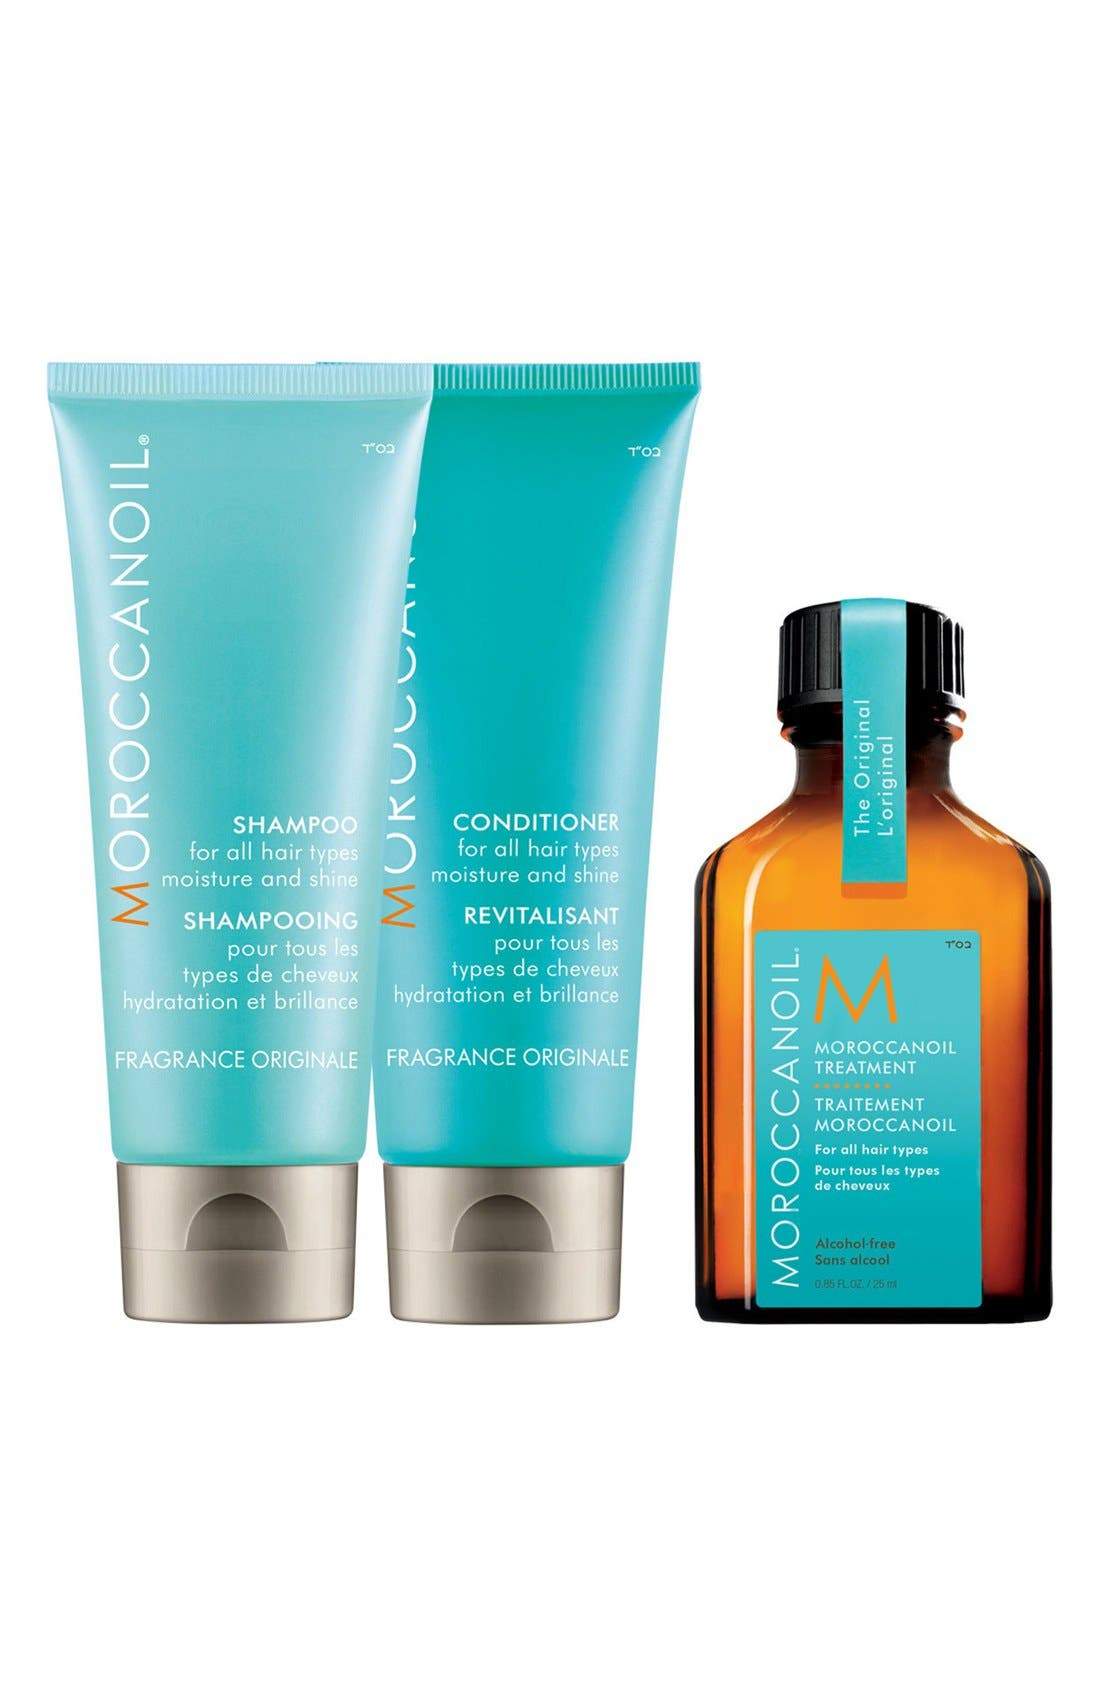 MOROCCANOIL Moisture & Shine Travel Kit ($37 Value)